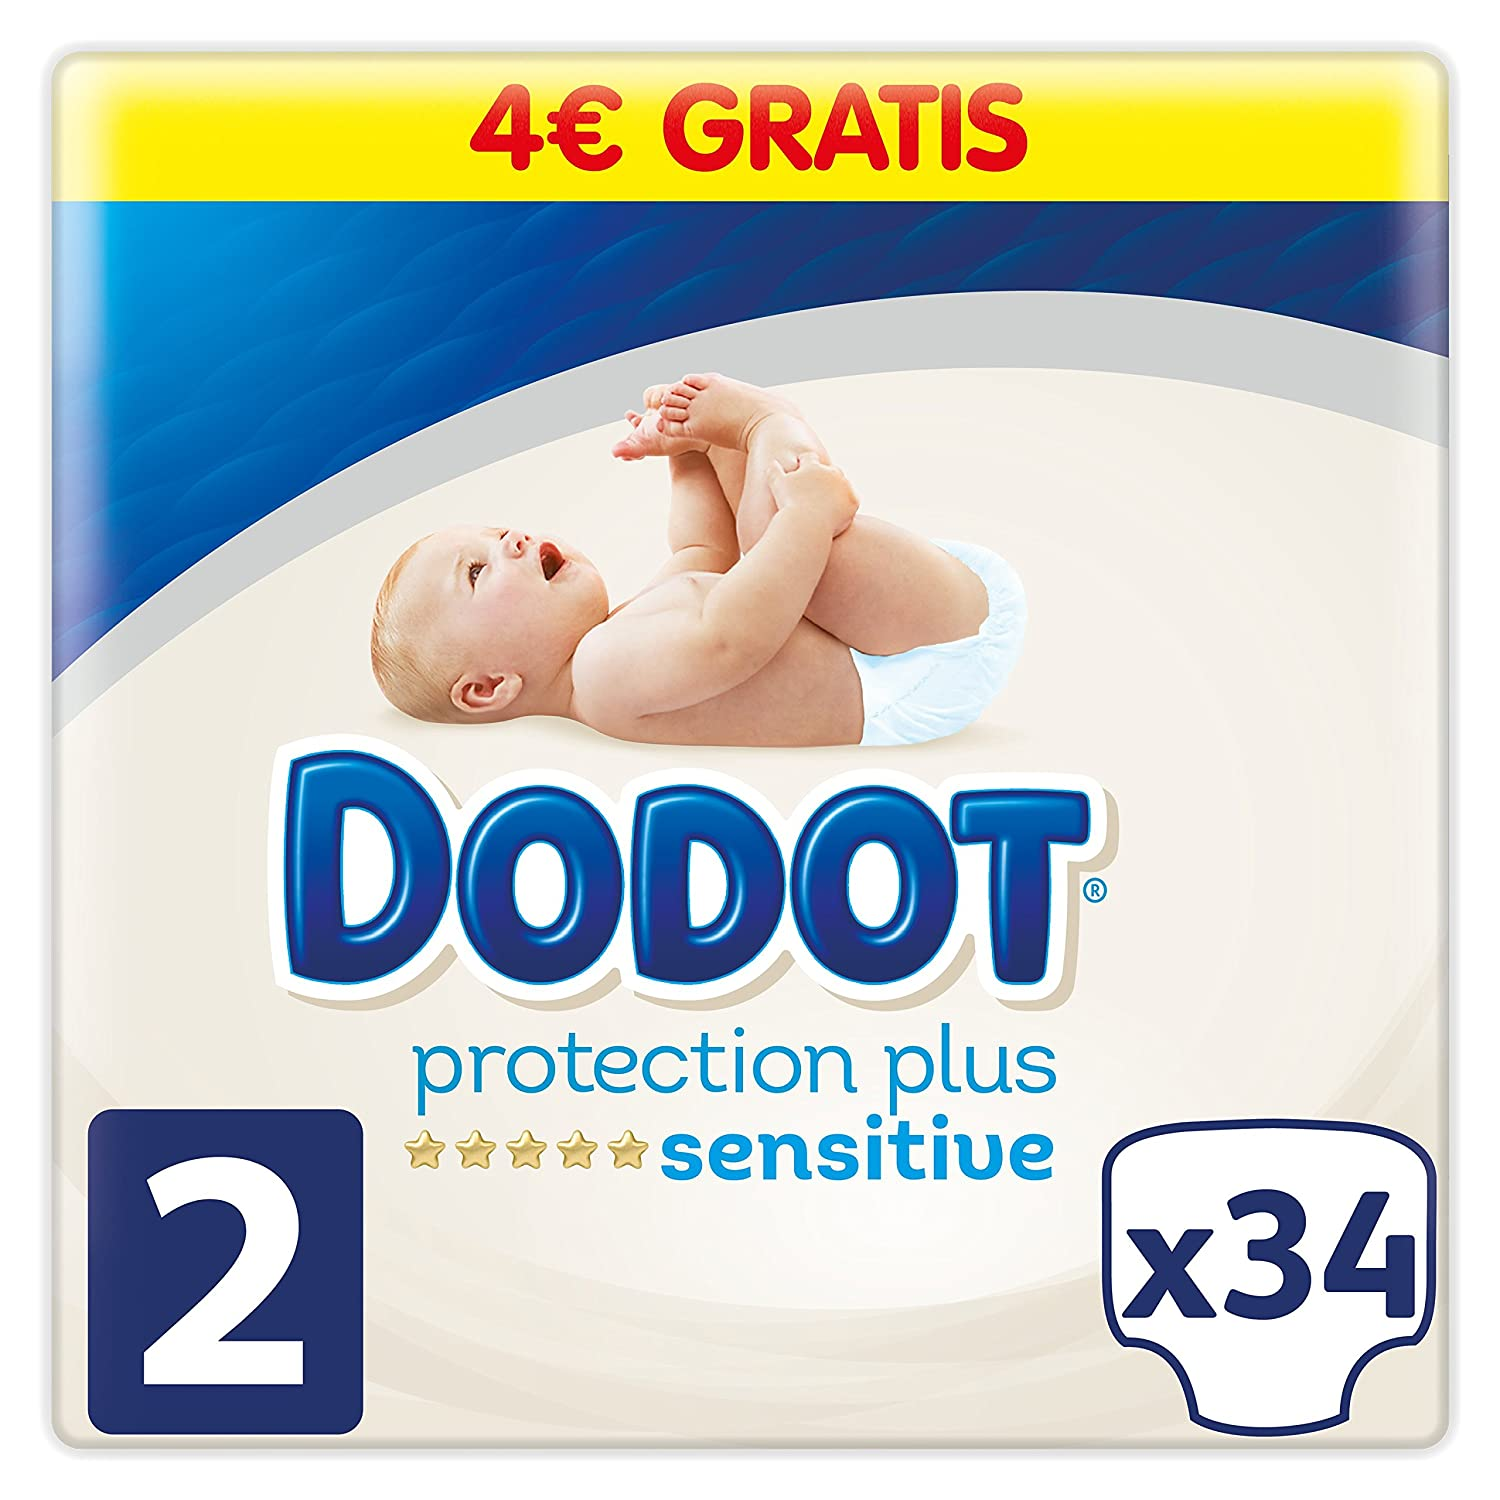 Dodot Pañales Protection Plus Sensitive, Talla 2, para Bebes de 4-8 kg